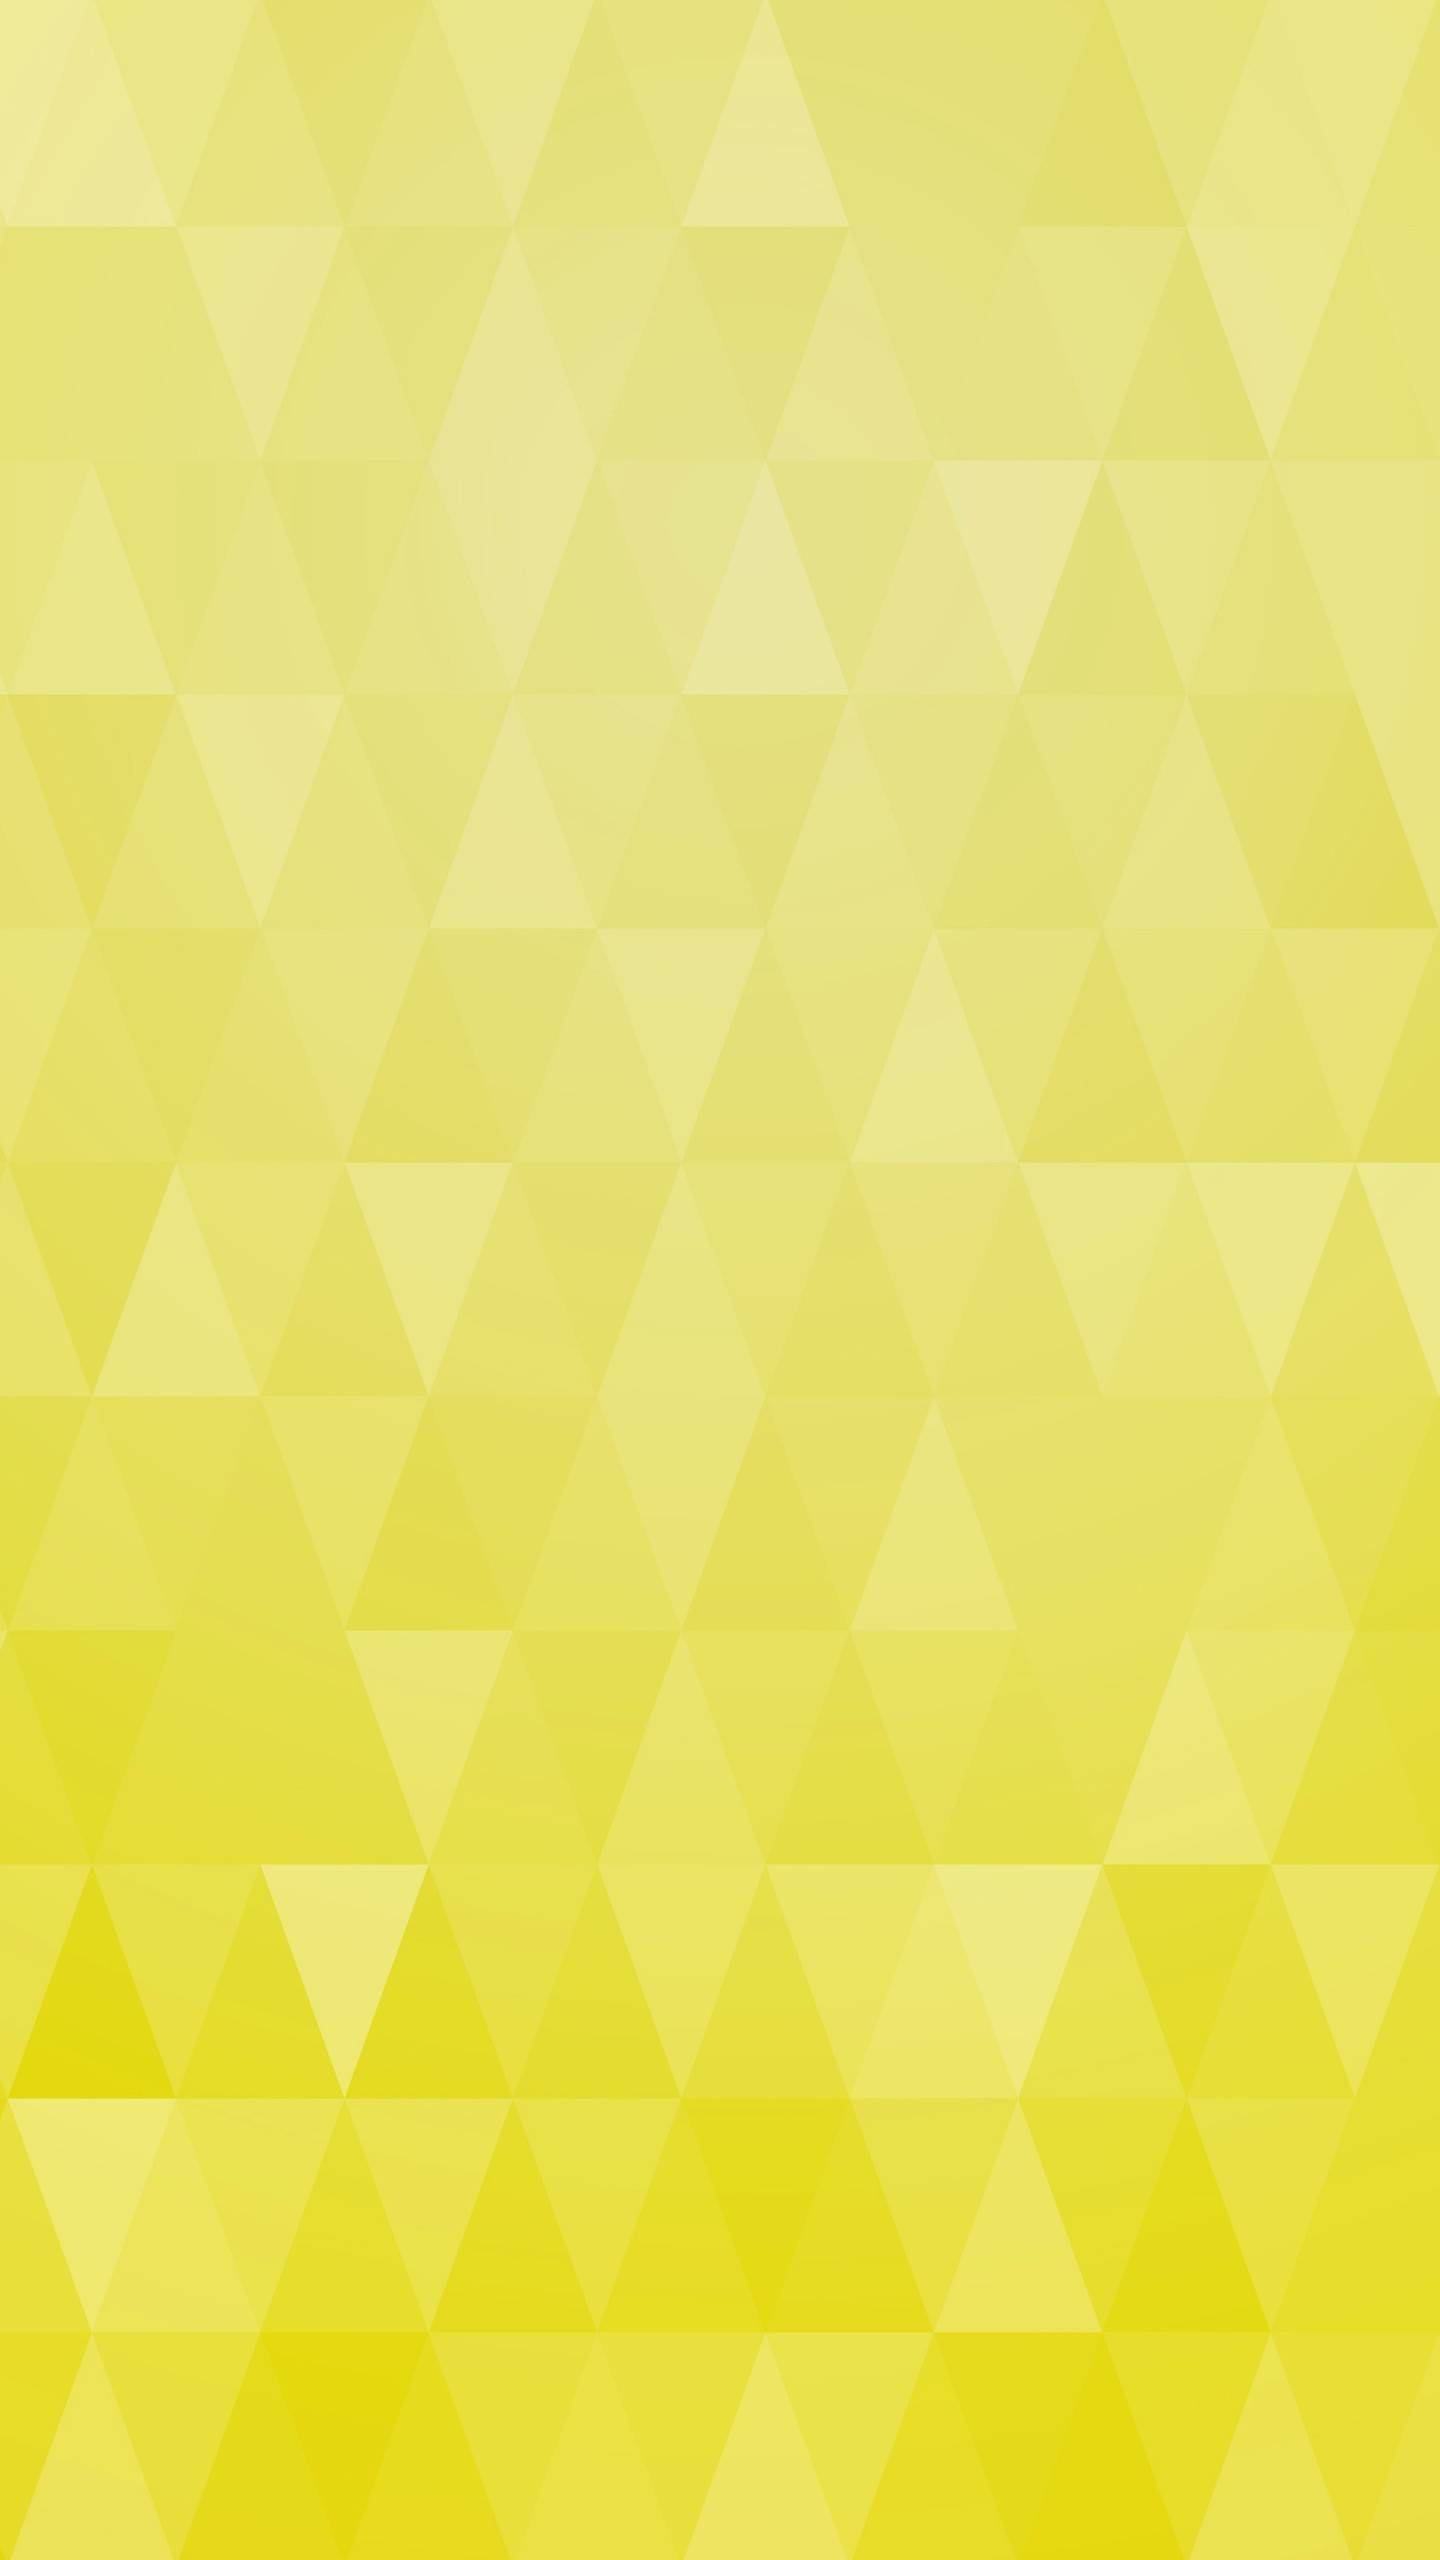 artistic pattern triangle yellow 8k 0d 1440x2560